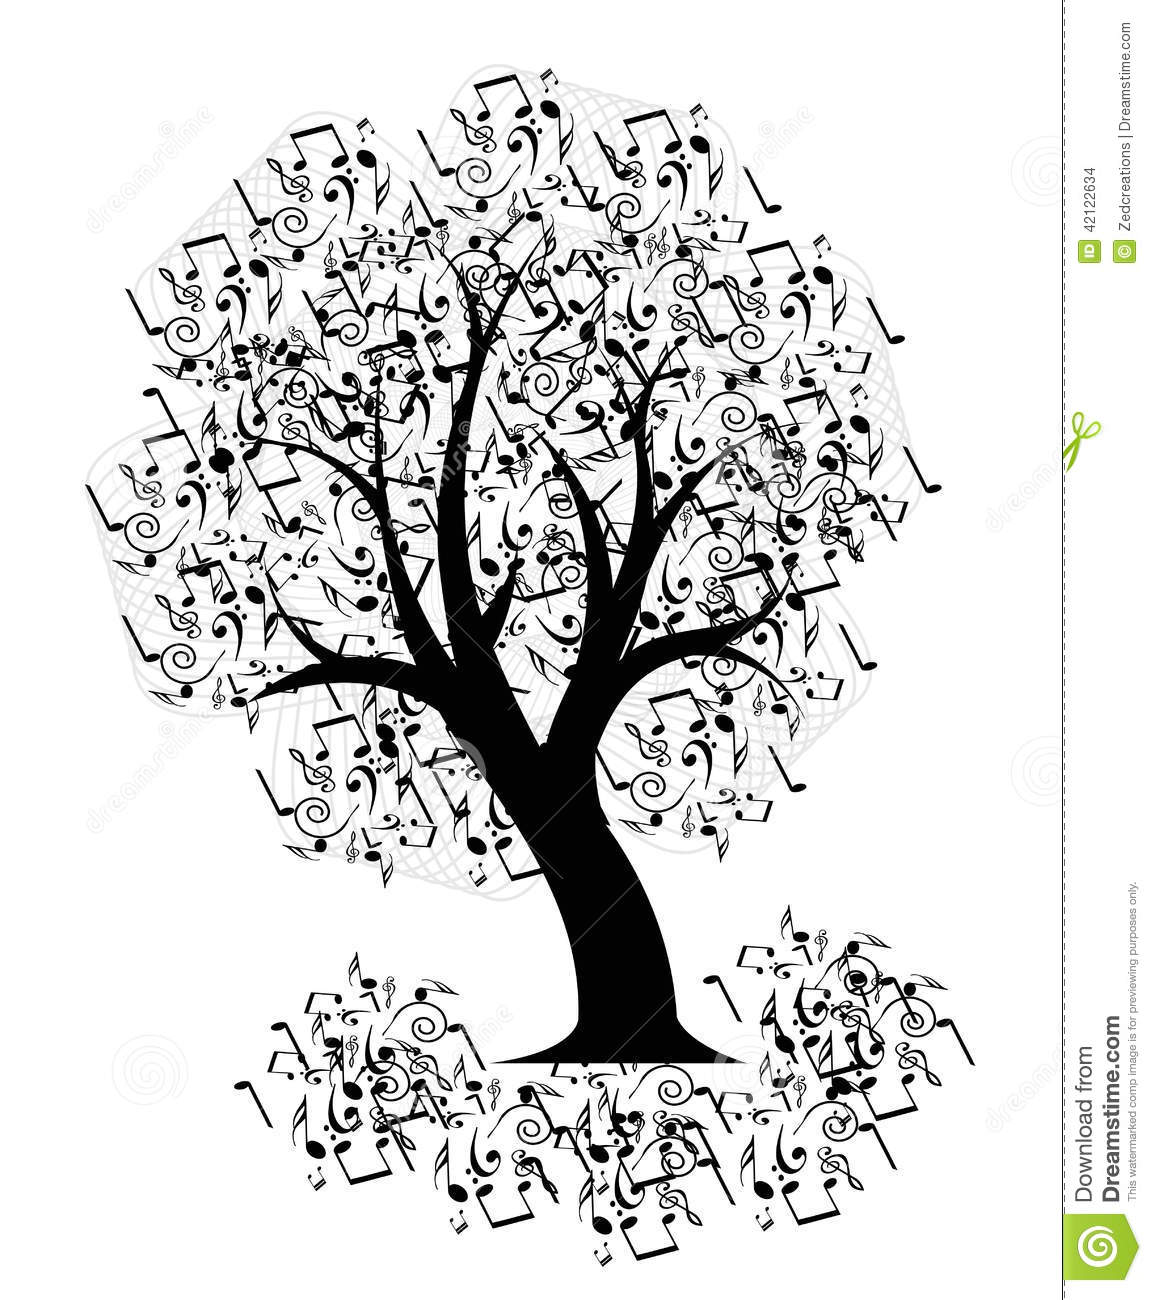 19 Design Abstract Music Tree Images